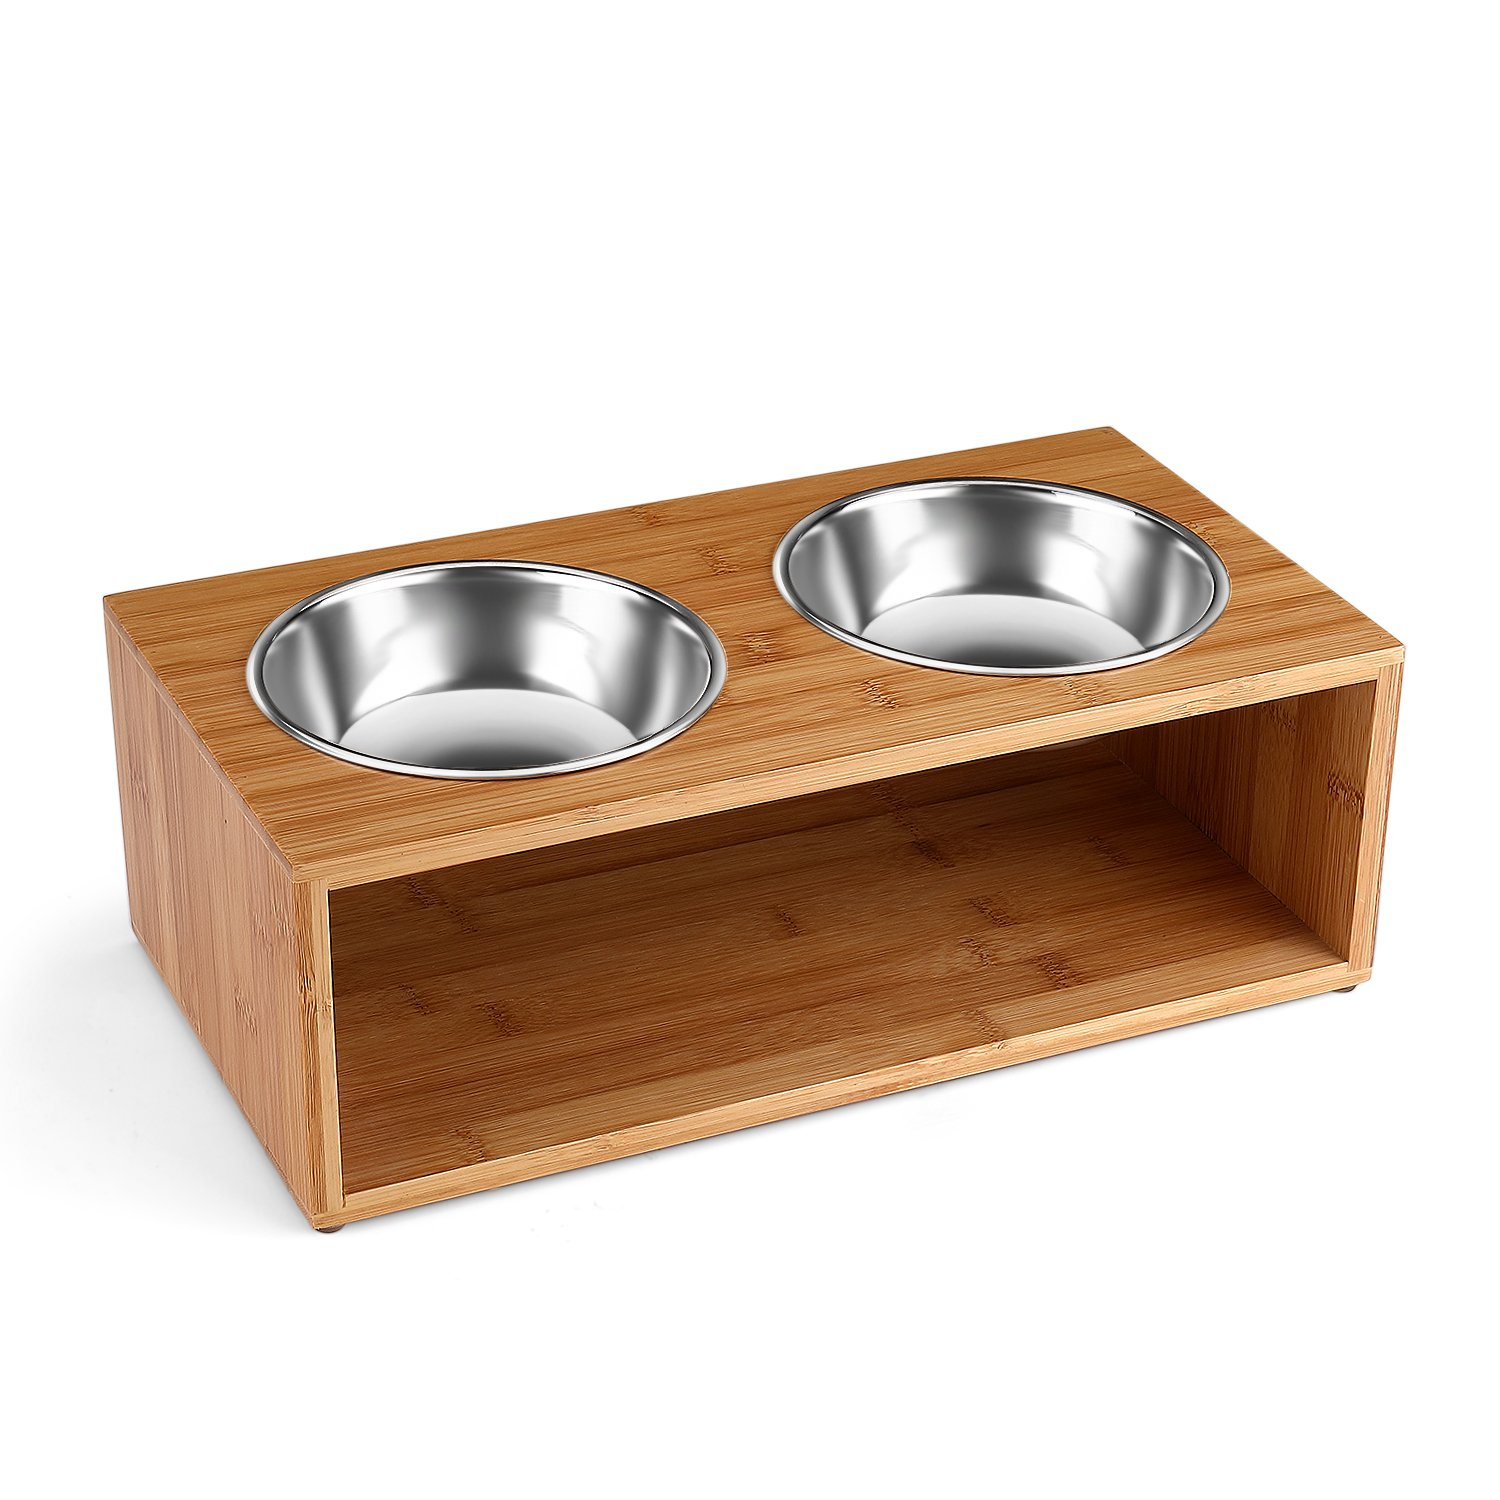 Flexzion Elevated Raised Dog and Cat Pet Feeder Bowls - Raised Stand Feed Station Tray Waterer with Double Stainless Steel Bowl Dish for Dog Cat Food and Water (14 Oz, 4.7'' Tall) Modern Bamboo Style by Flexzion